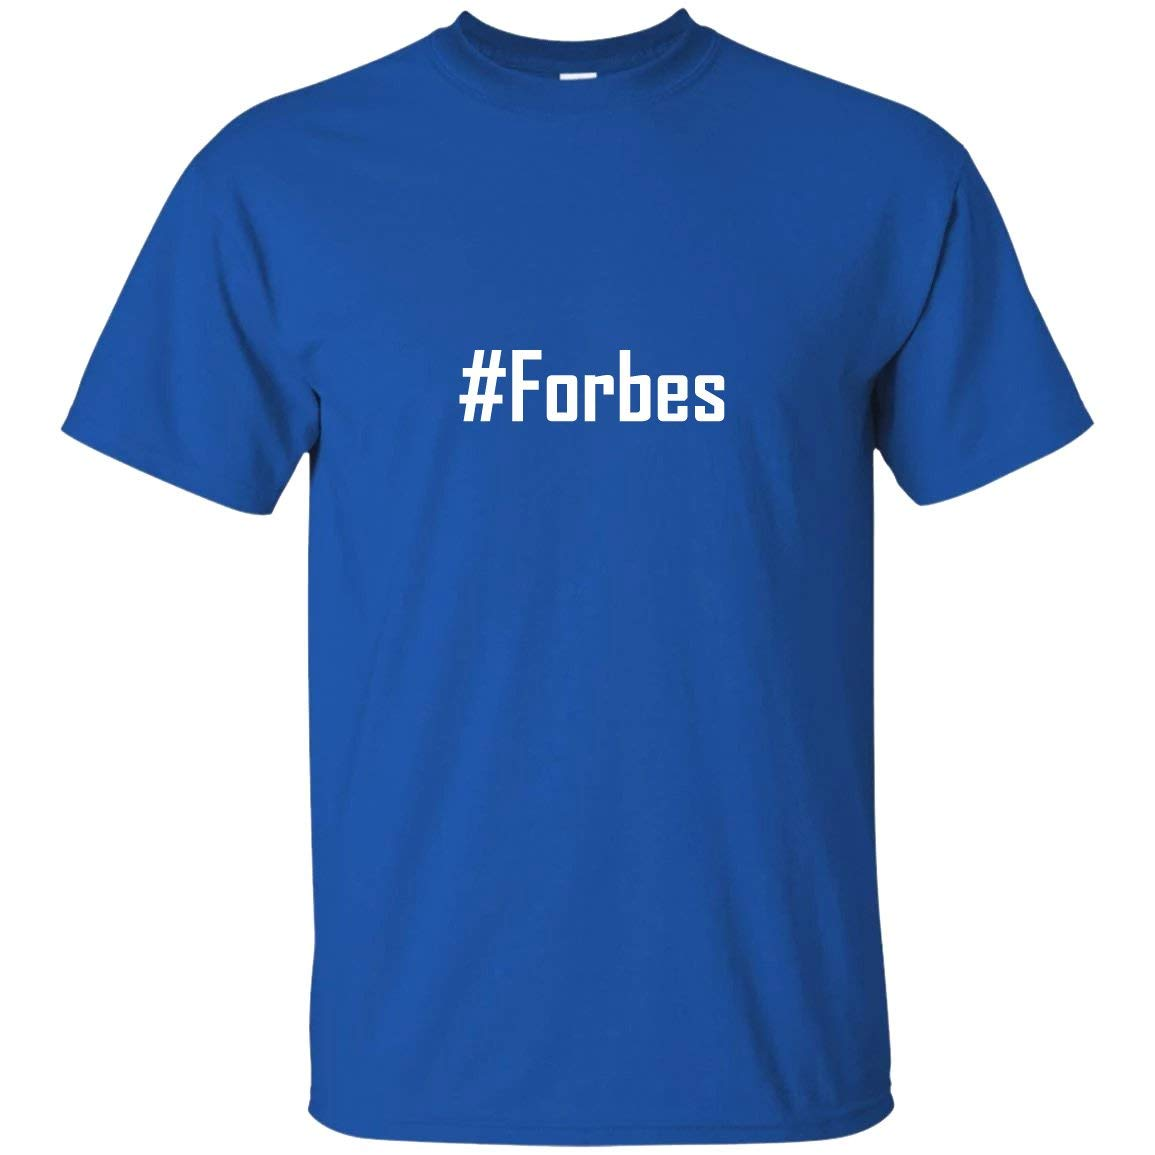 CHIKYSHIRT #Forbes Hashtag - A Soft & Comfortable ...